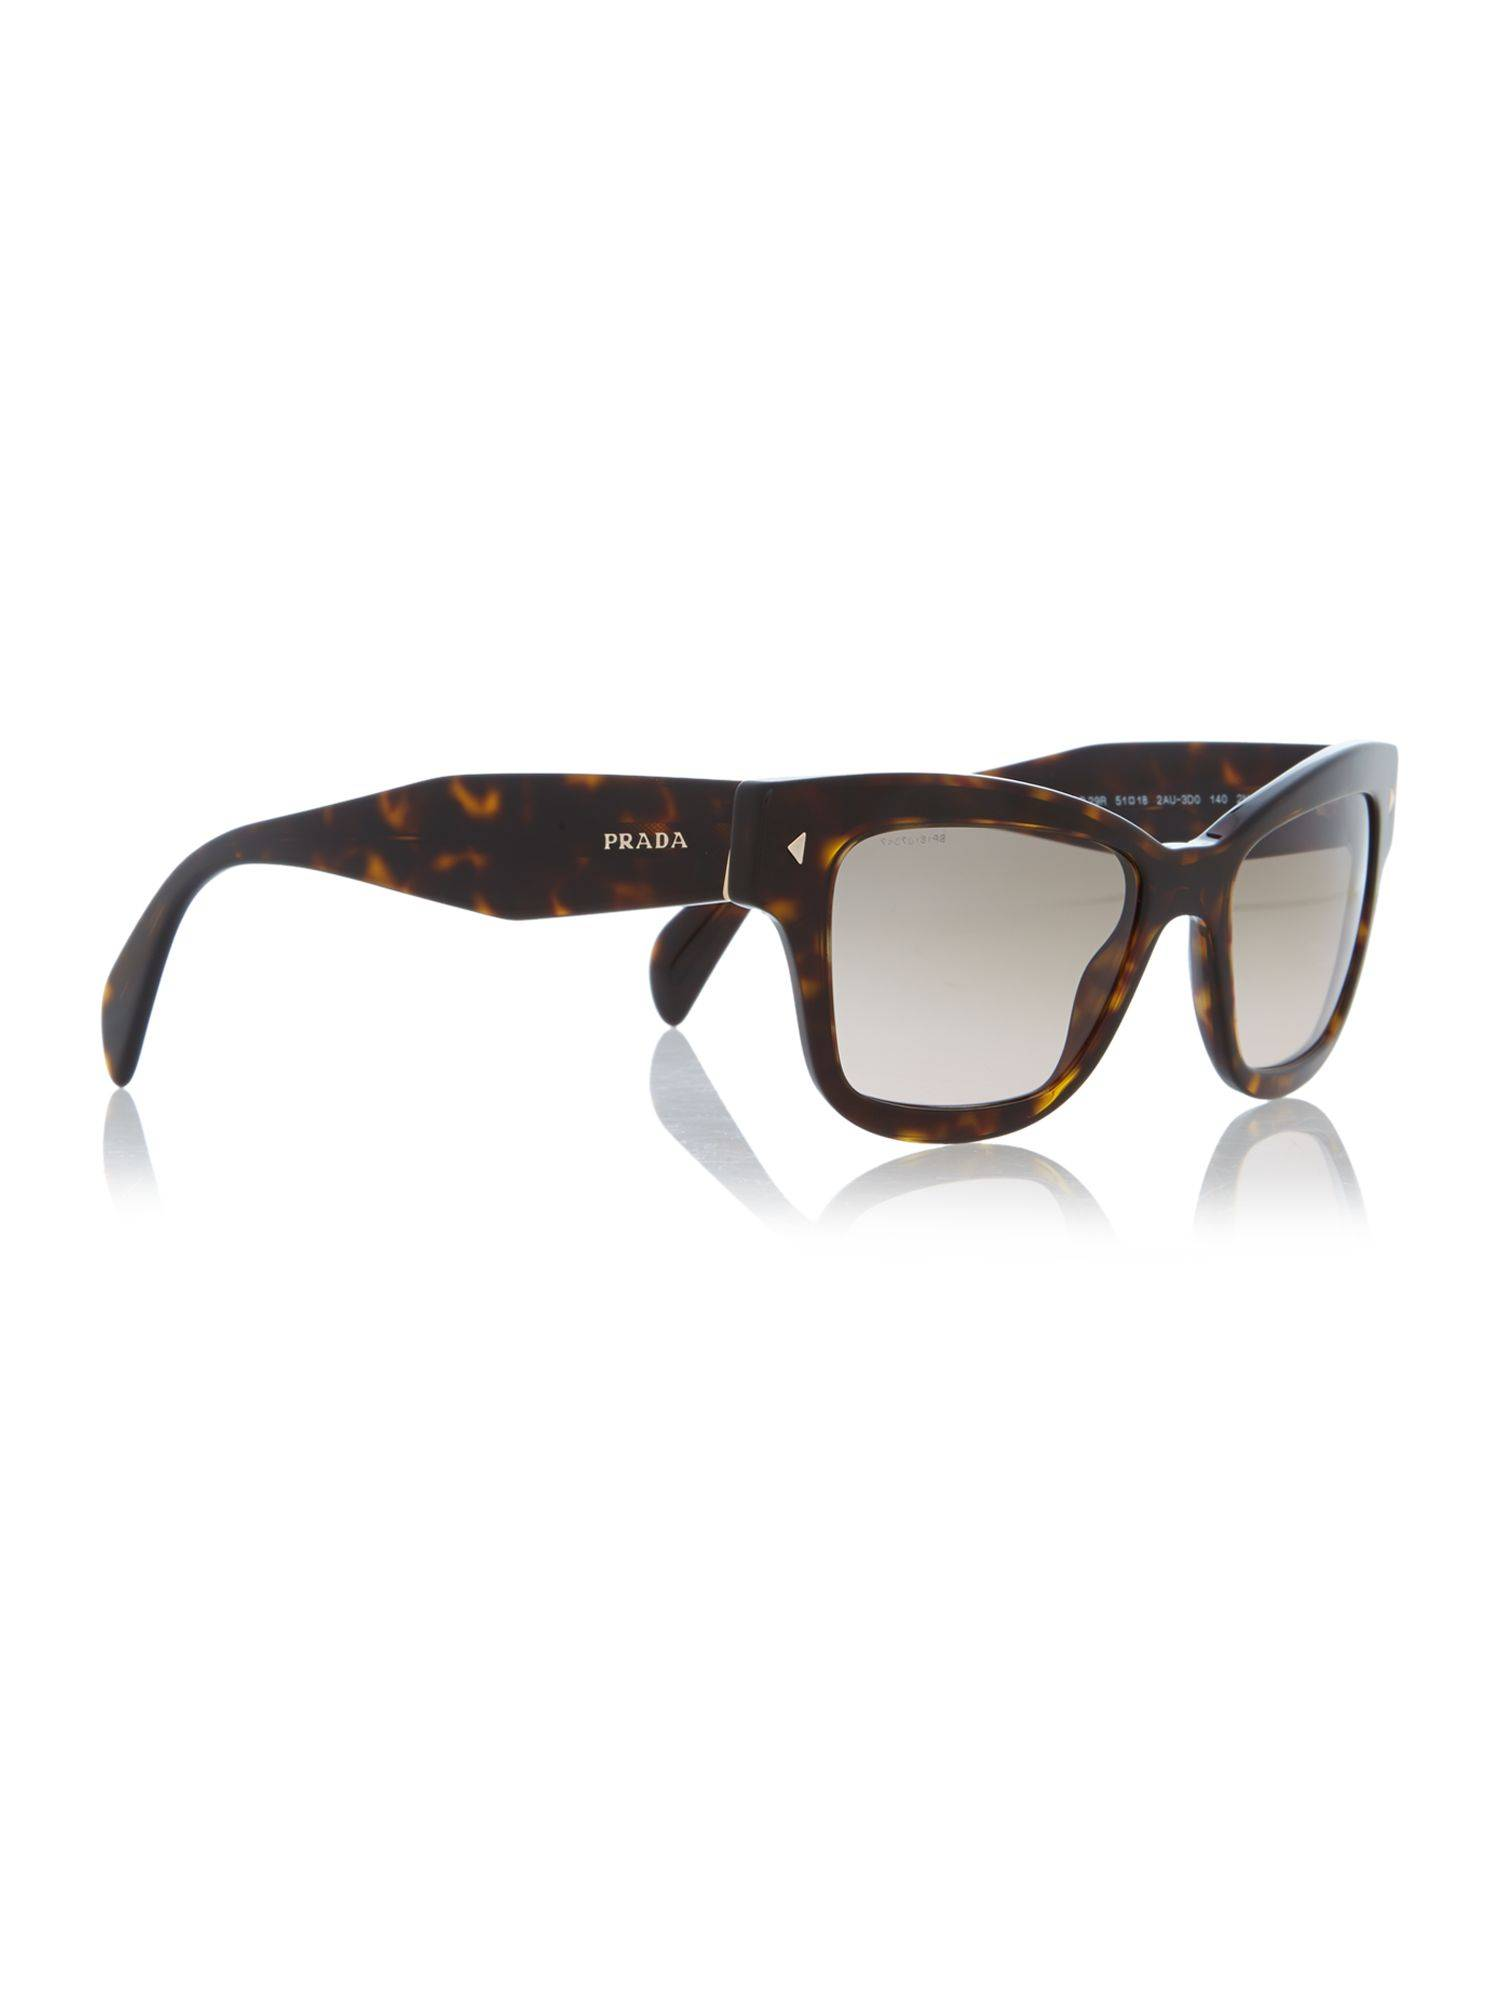 Prada Sunglasses PR 29RS Butterfly sunglasses